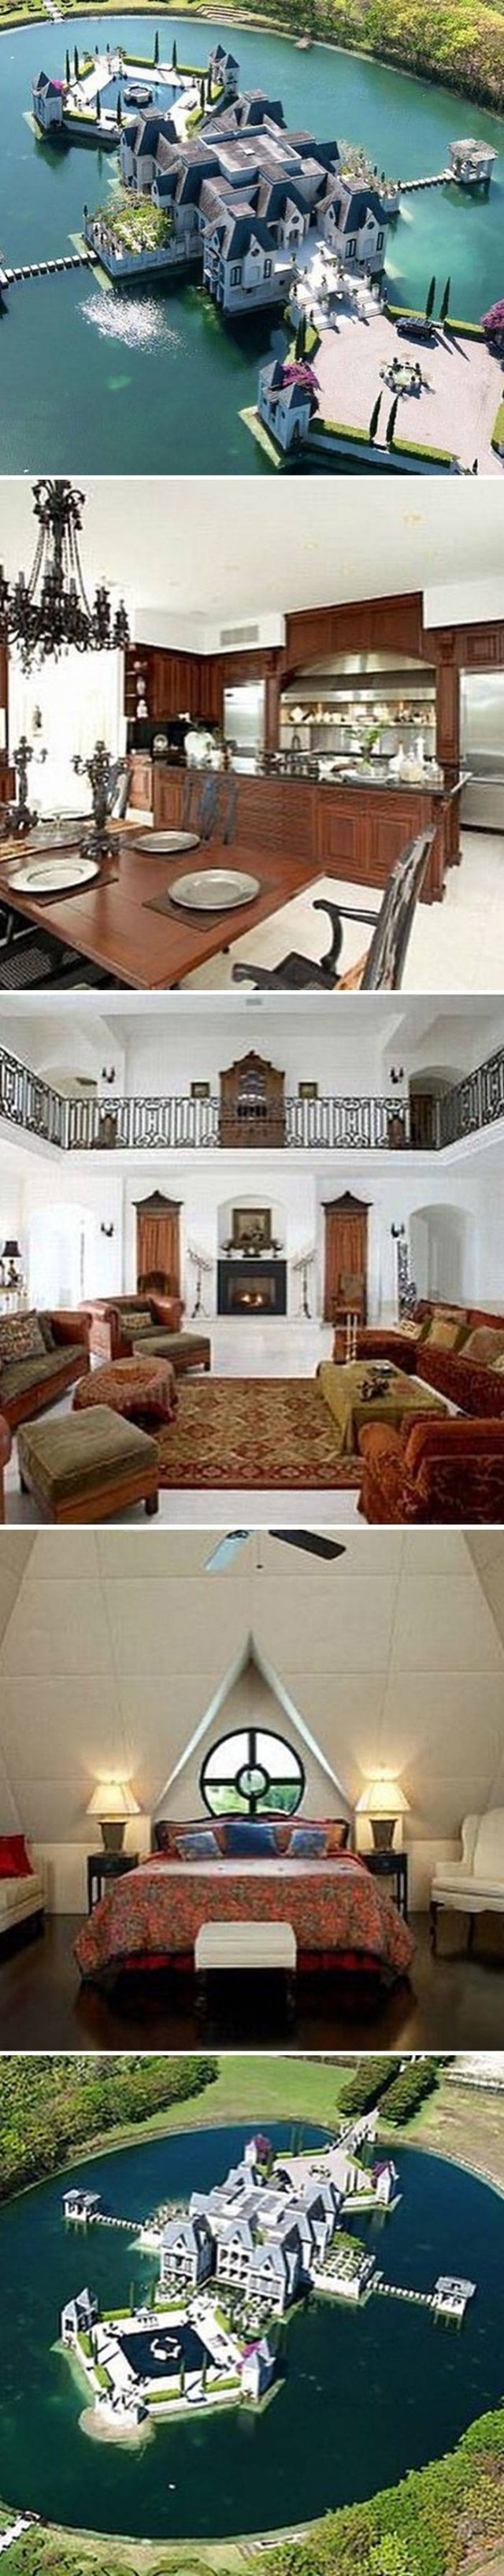 Price For Real Estate Listings (30 pics)